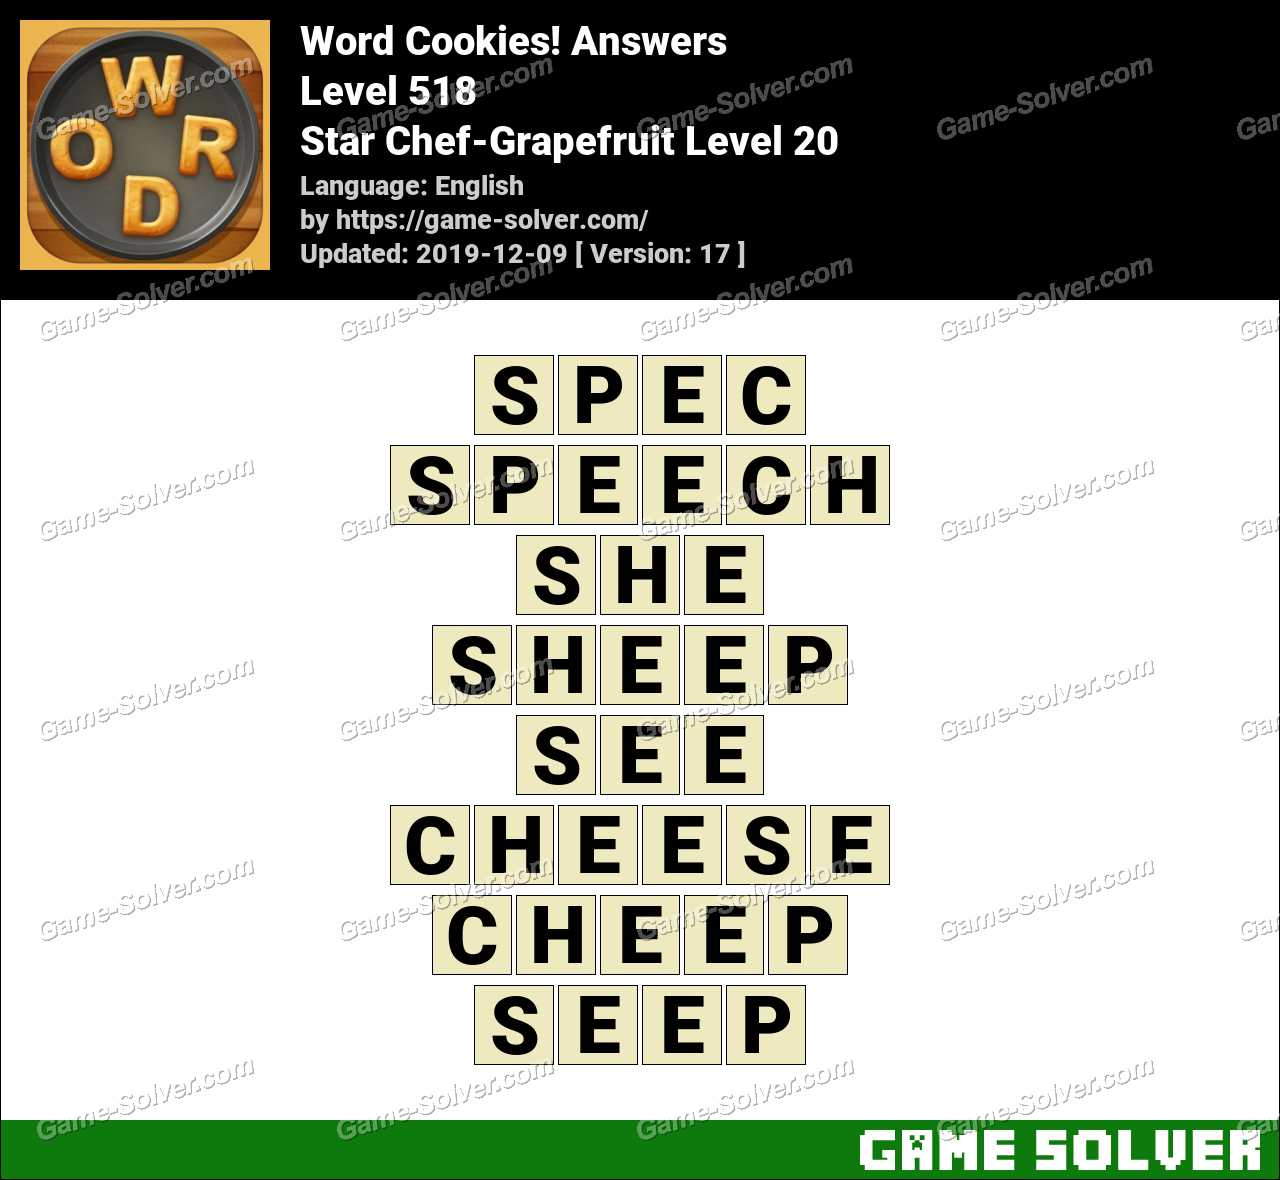 Word Cookies Star Chef-Grapefruit Level 20 Answers